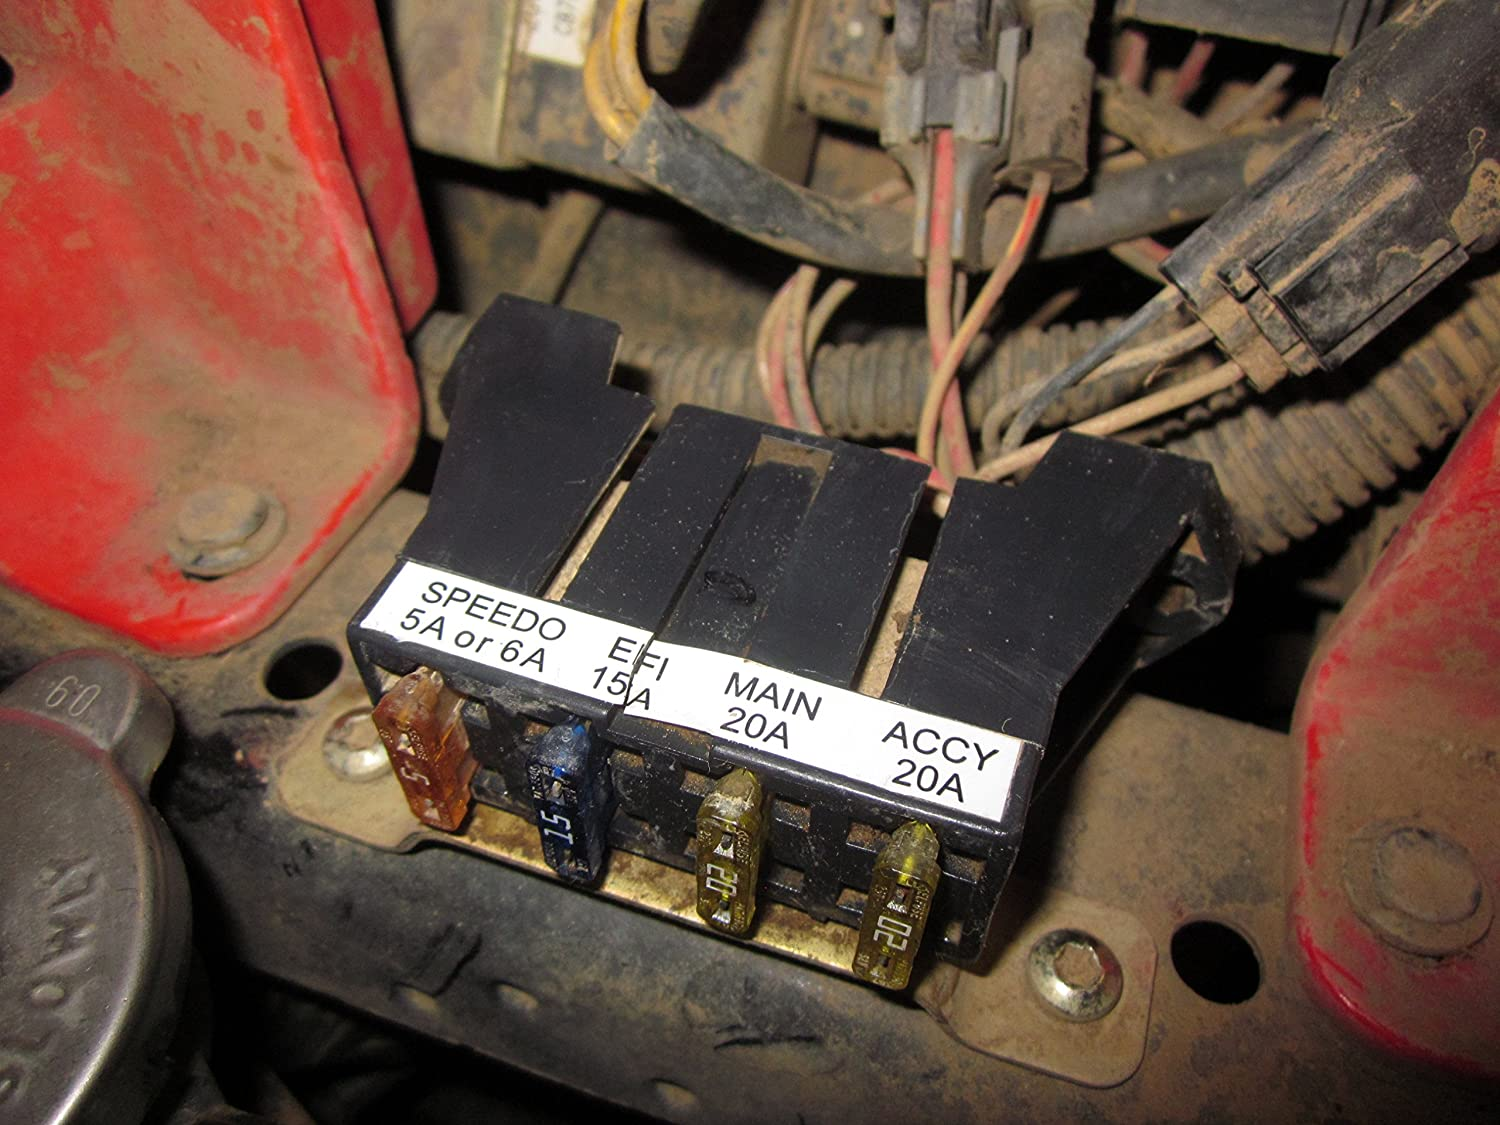 2012 Polaris Sportsman 500 Fuse Box Location : Polaris sportsman fuse box wiring library